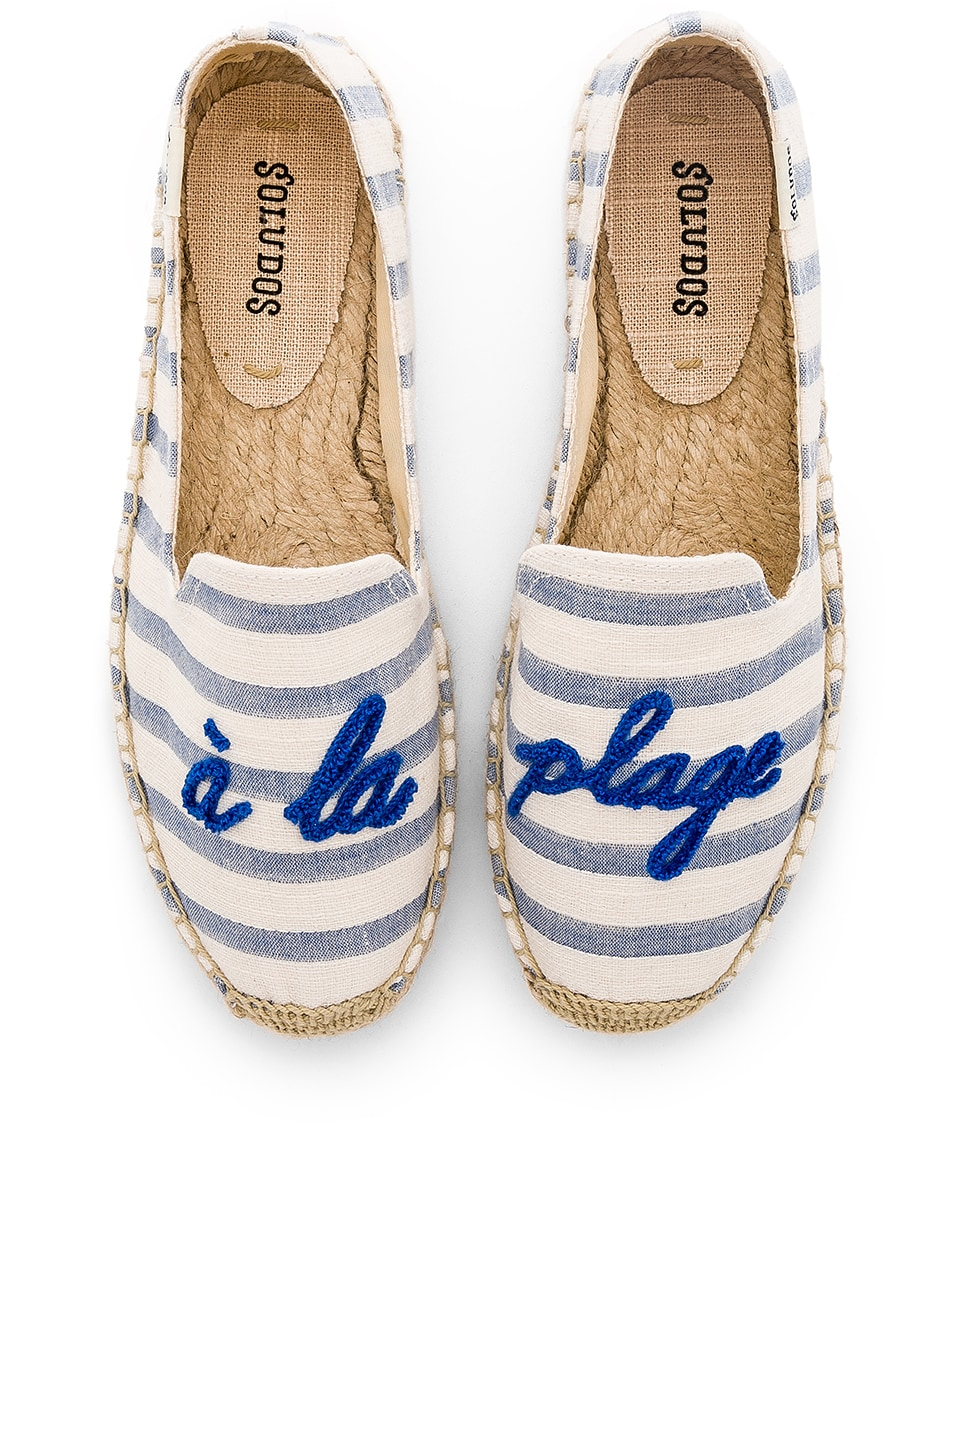 Soludos A La Plage Smoking Slipper in Natural & Blue